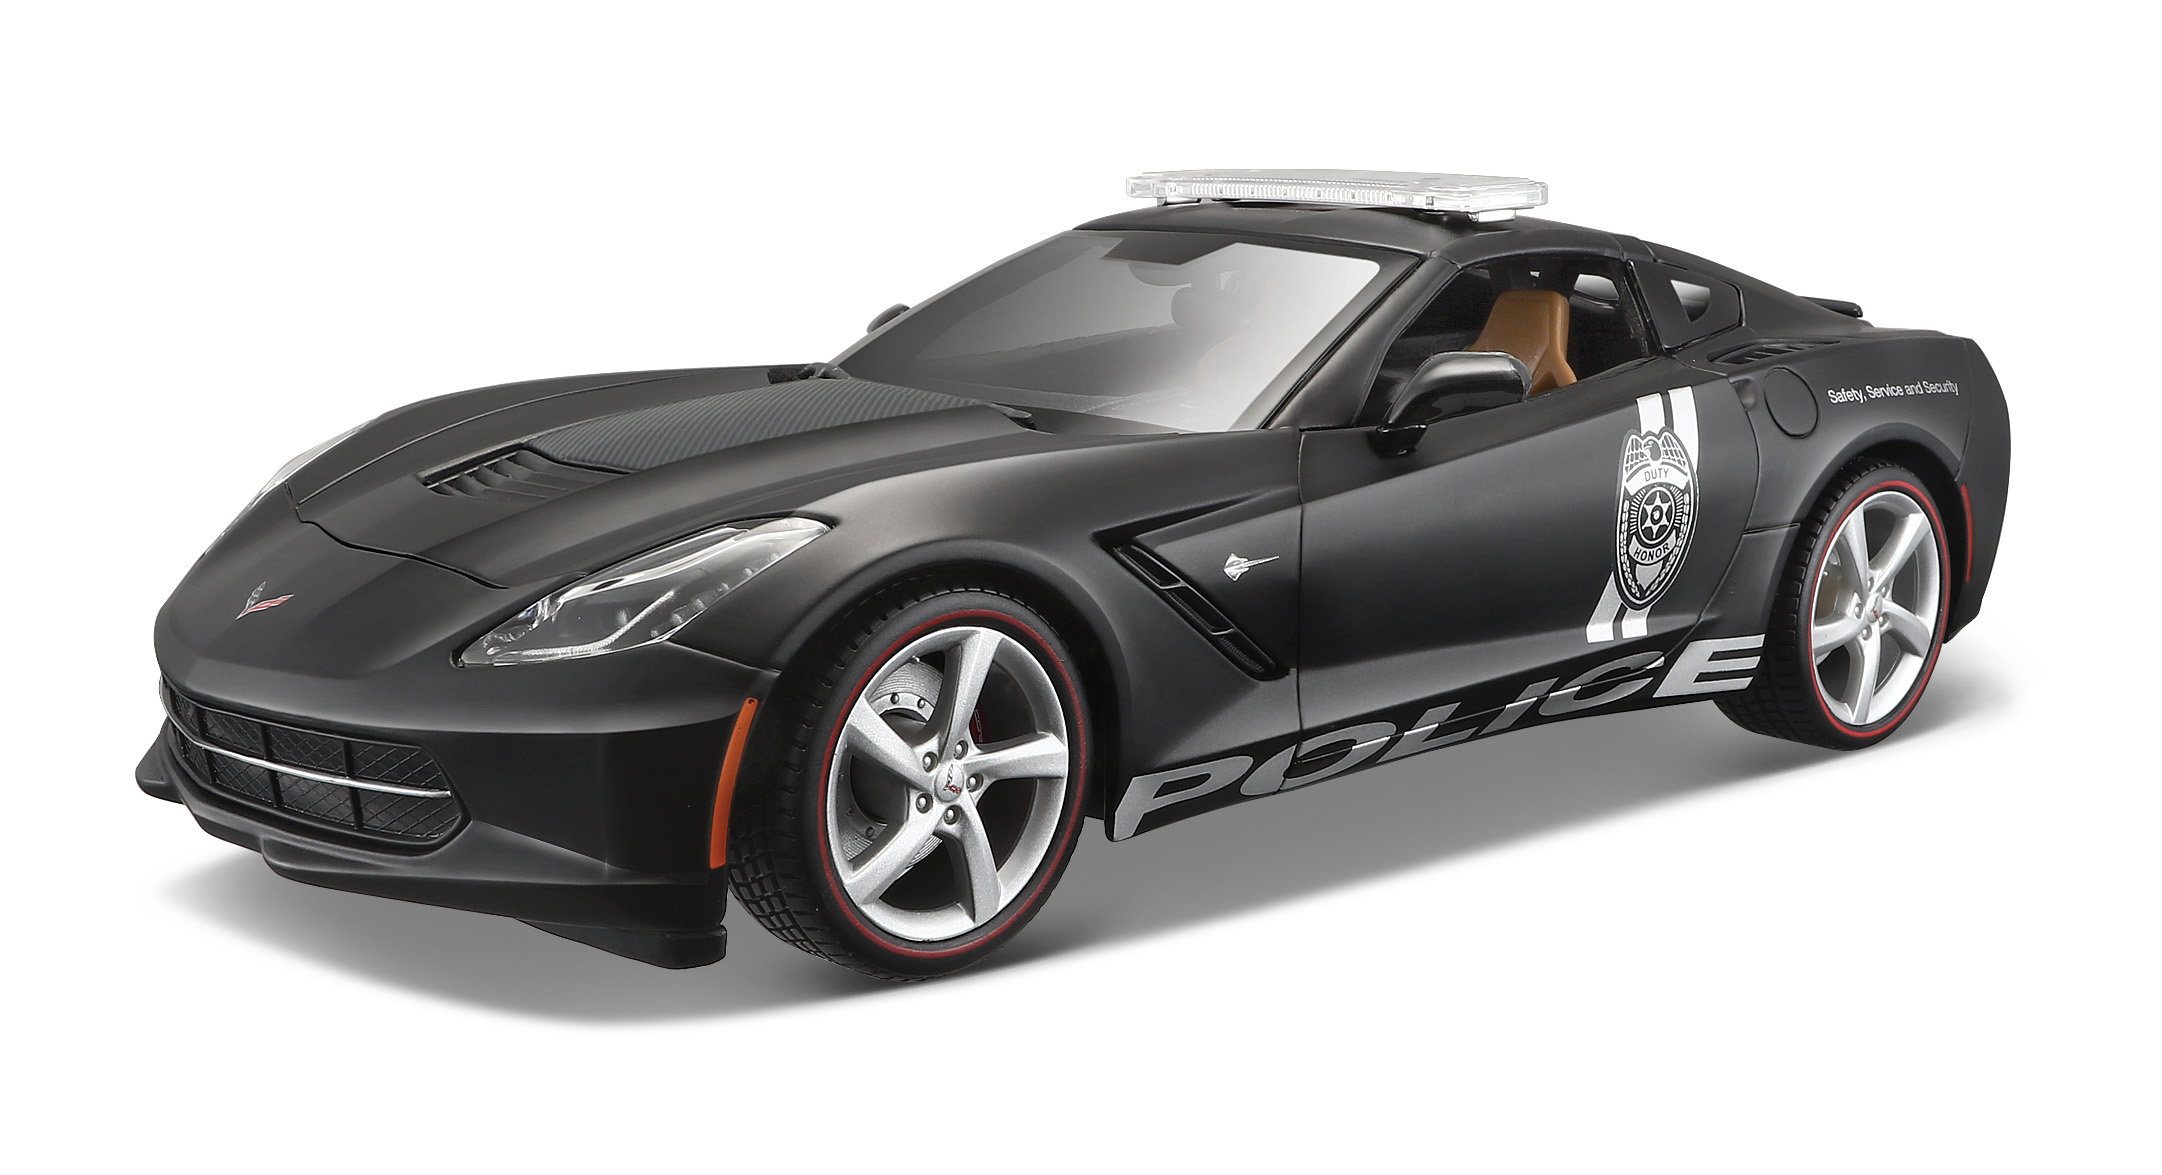 2014 Corvette Stingray Police 1:18